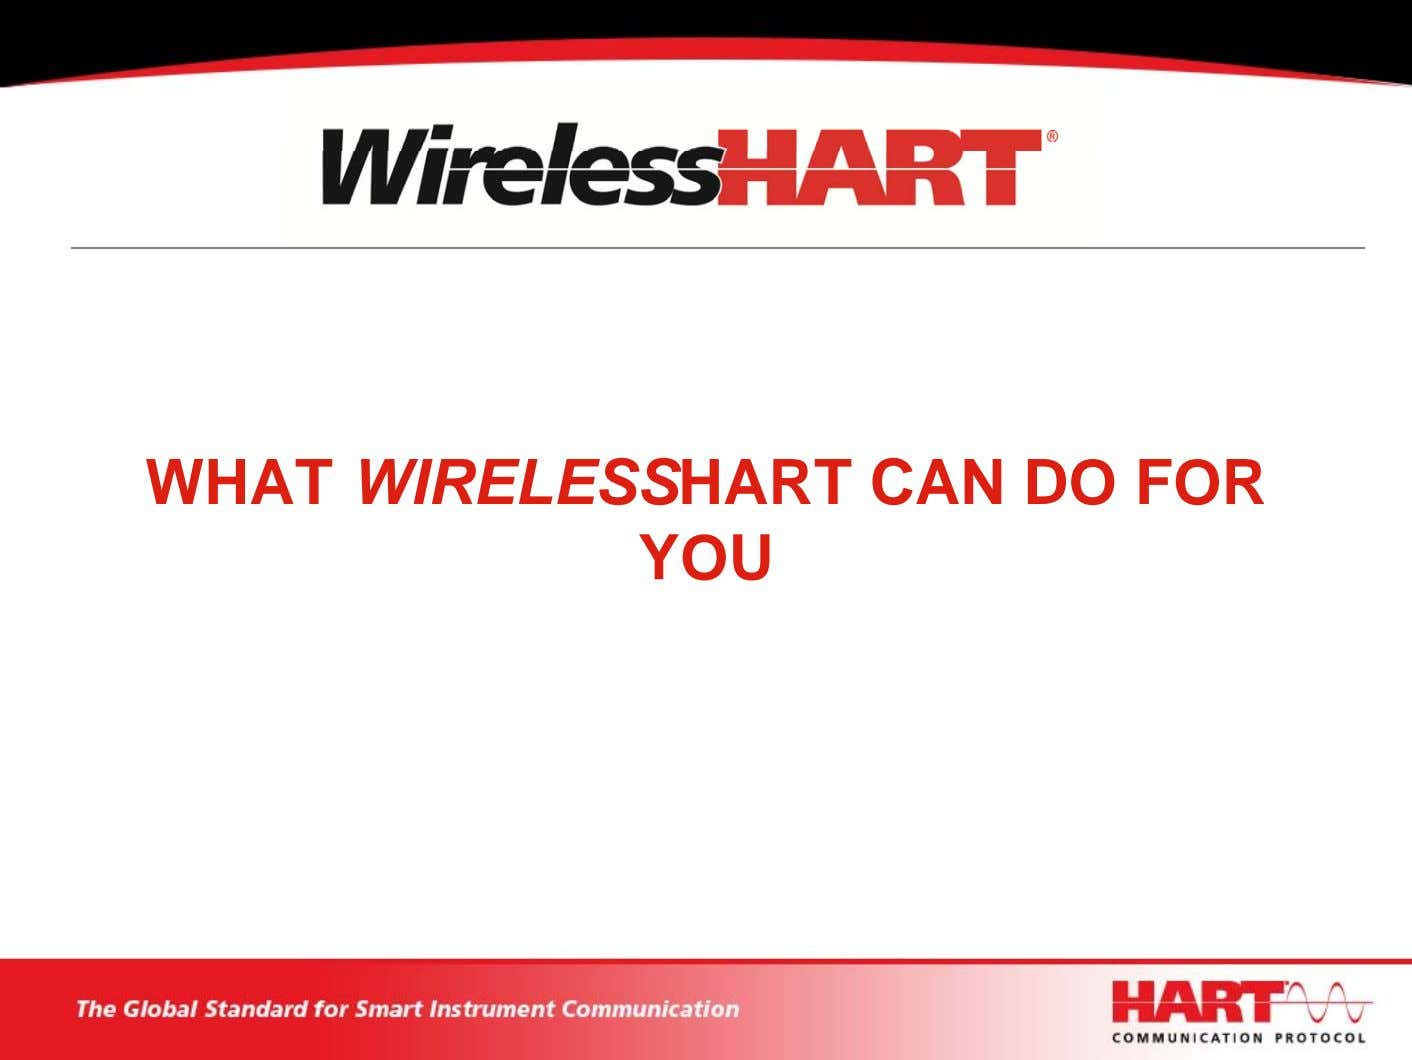 WHAT WIRELESSHART CAN DO FOR YOU